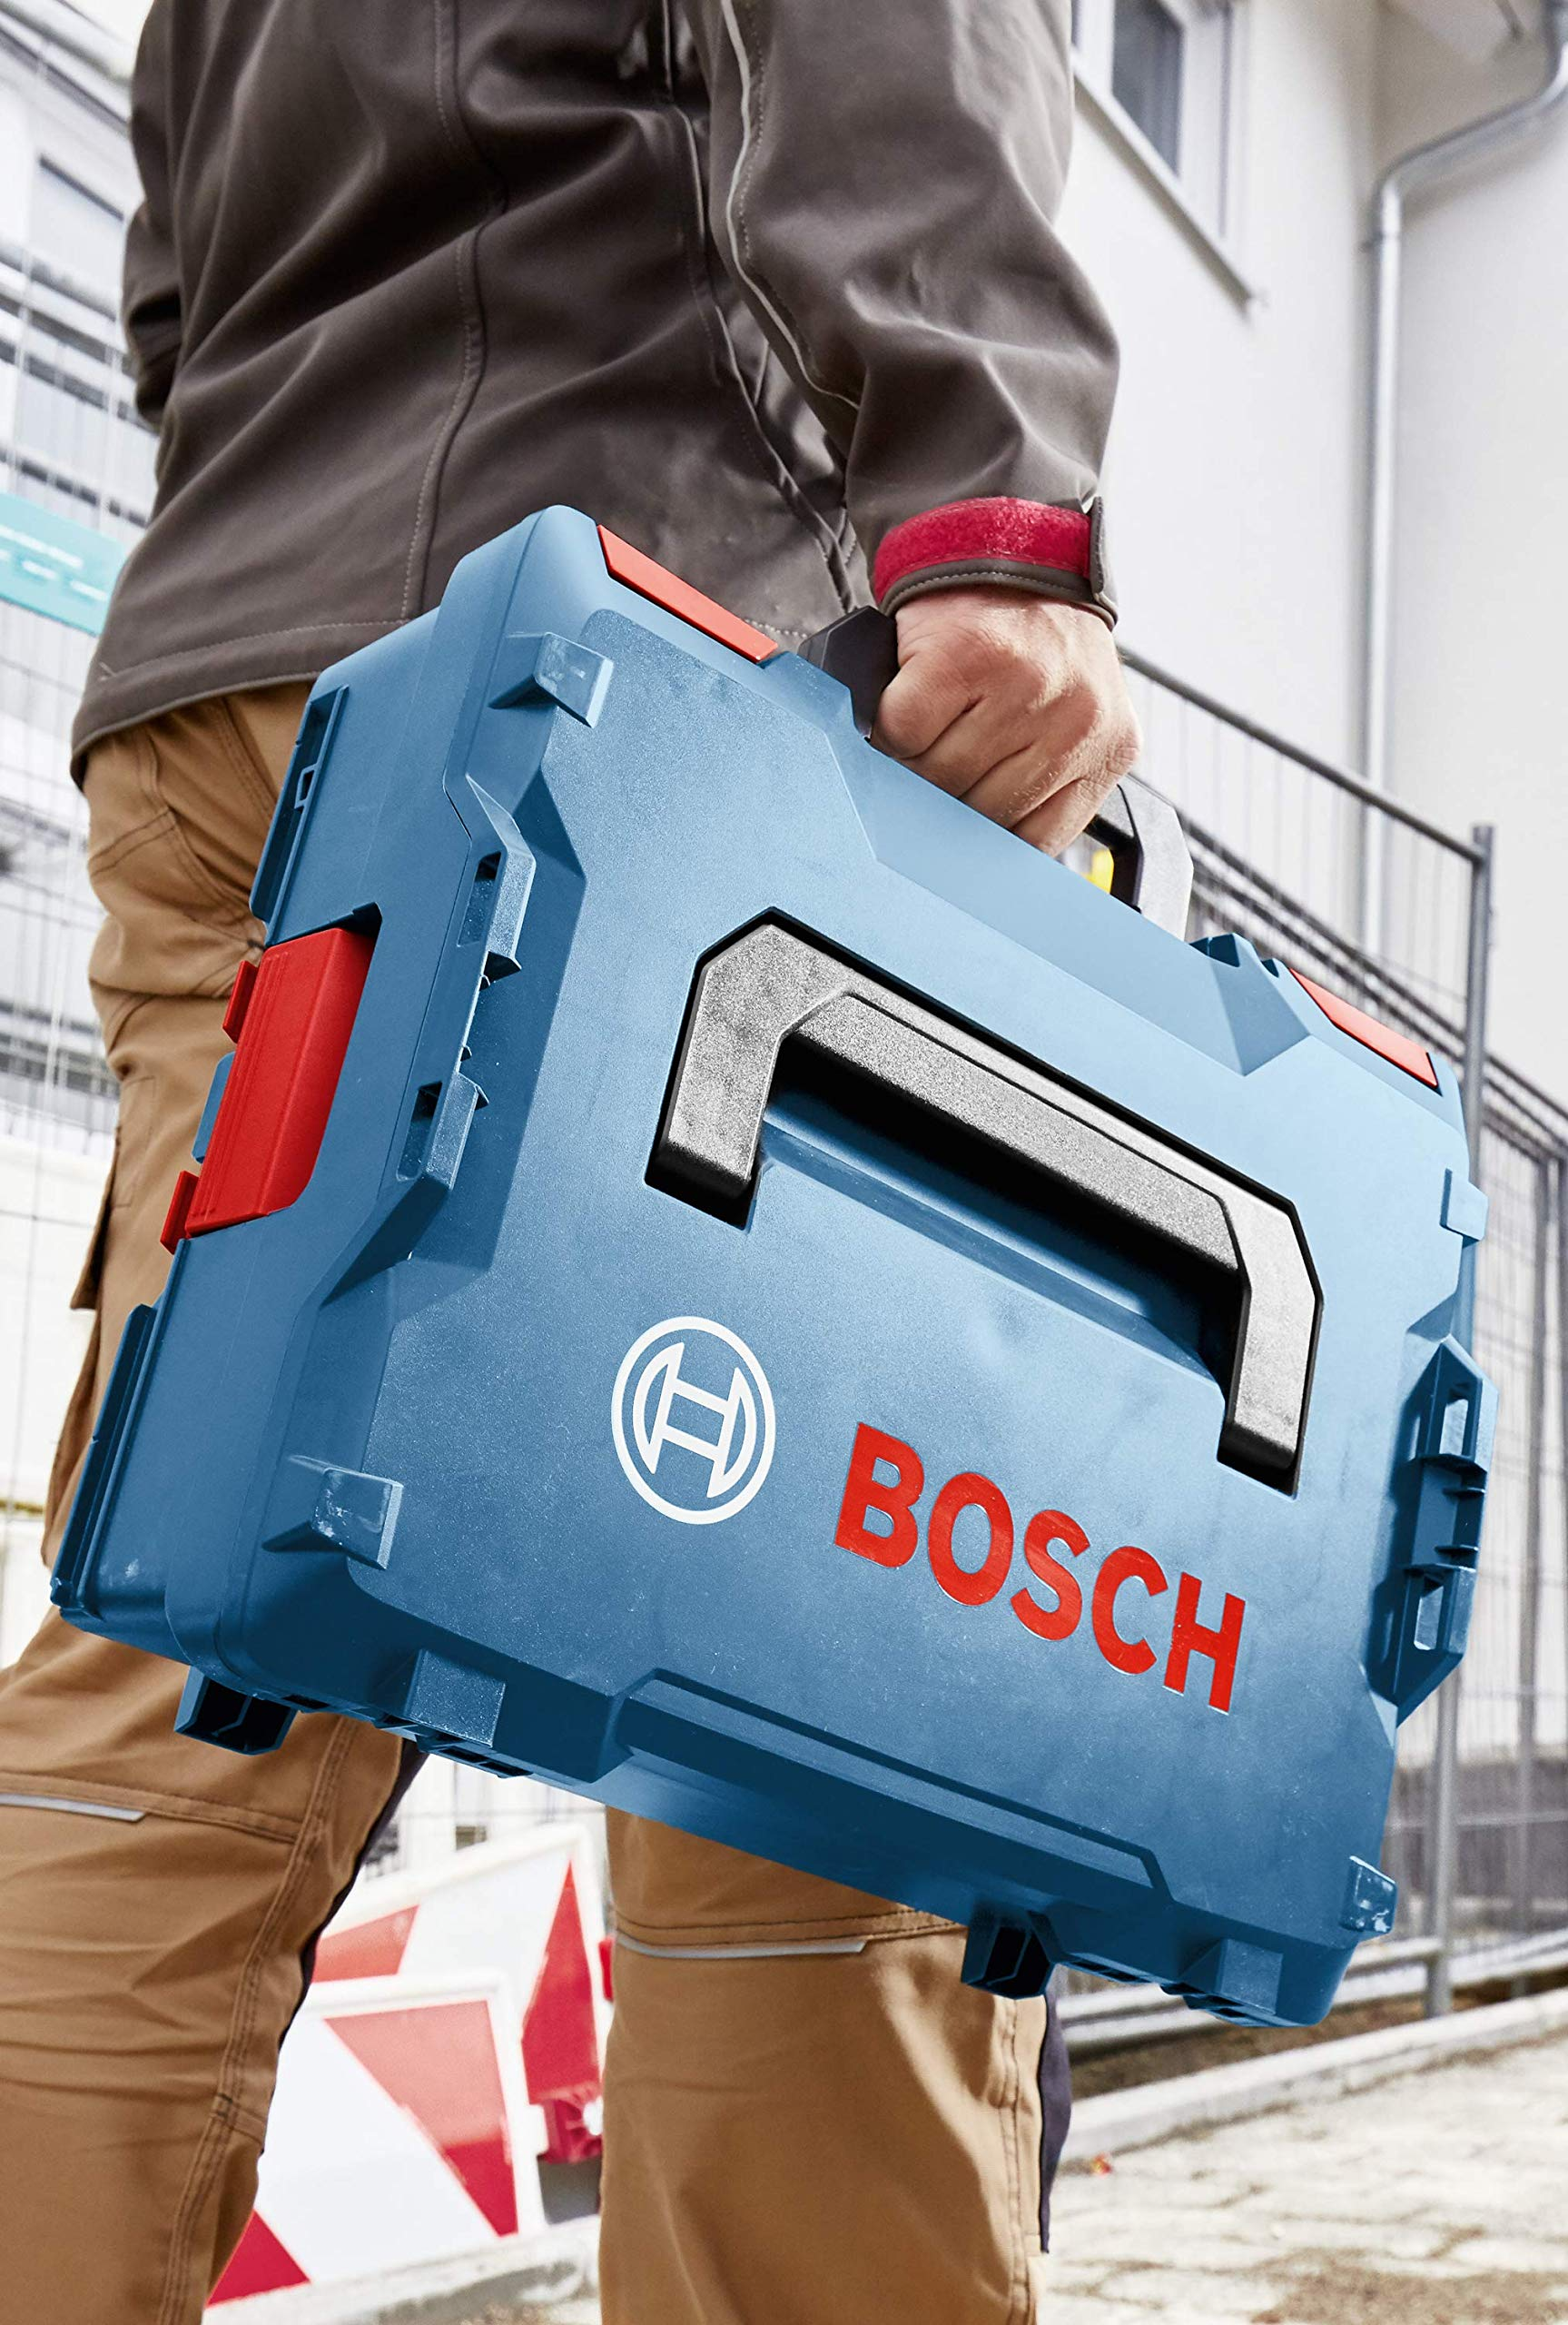 Bosch L-BOXX-1 4.5 In. x 14 In. x 17.5 In. Stackable Tool Storage Case by Bosch (Image #6)